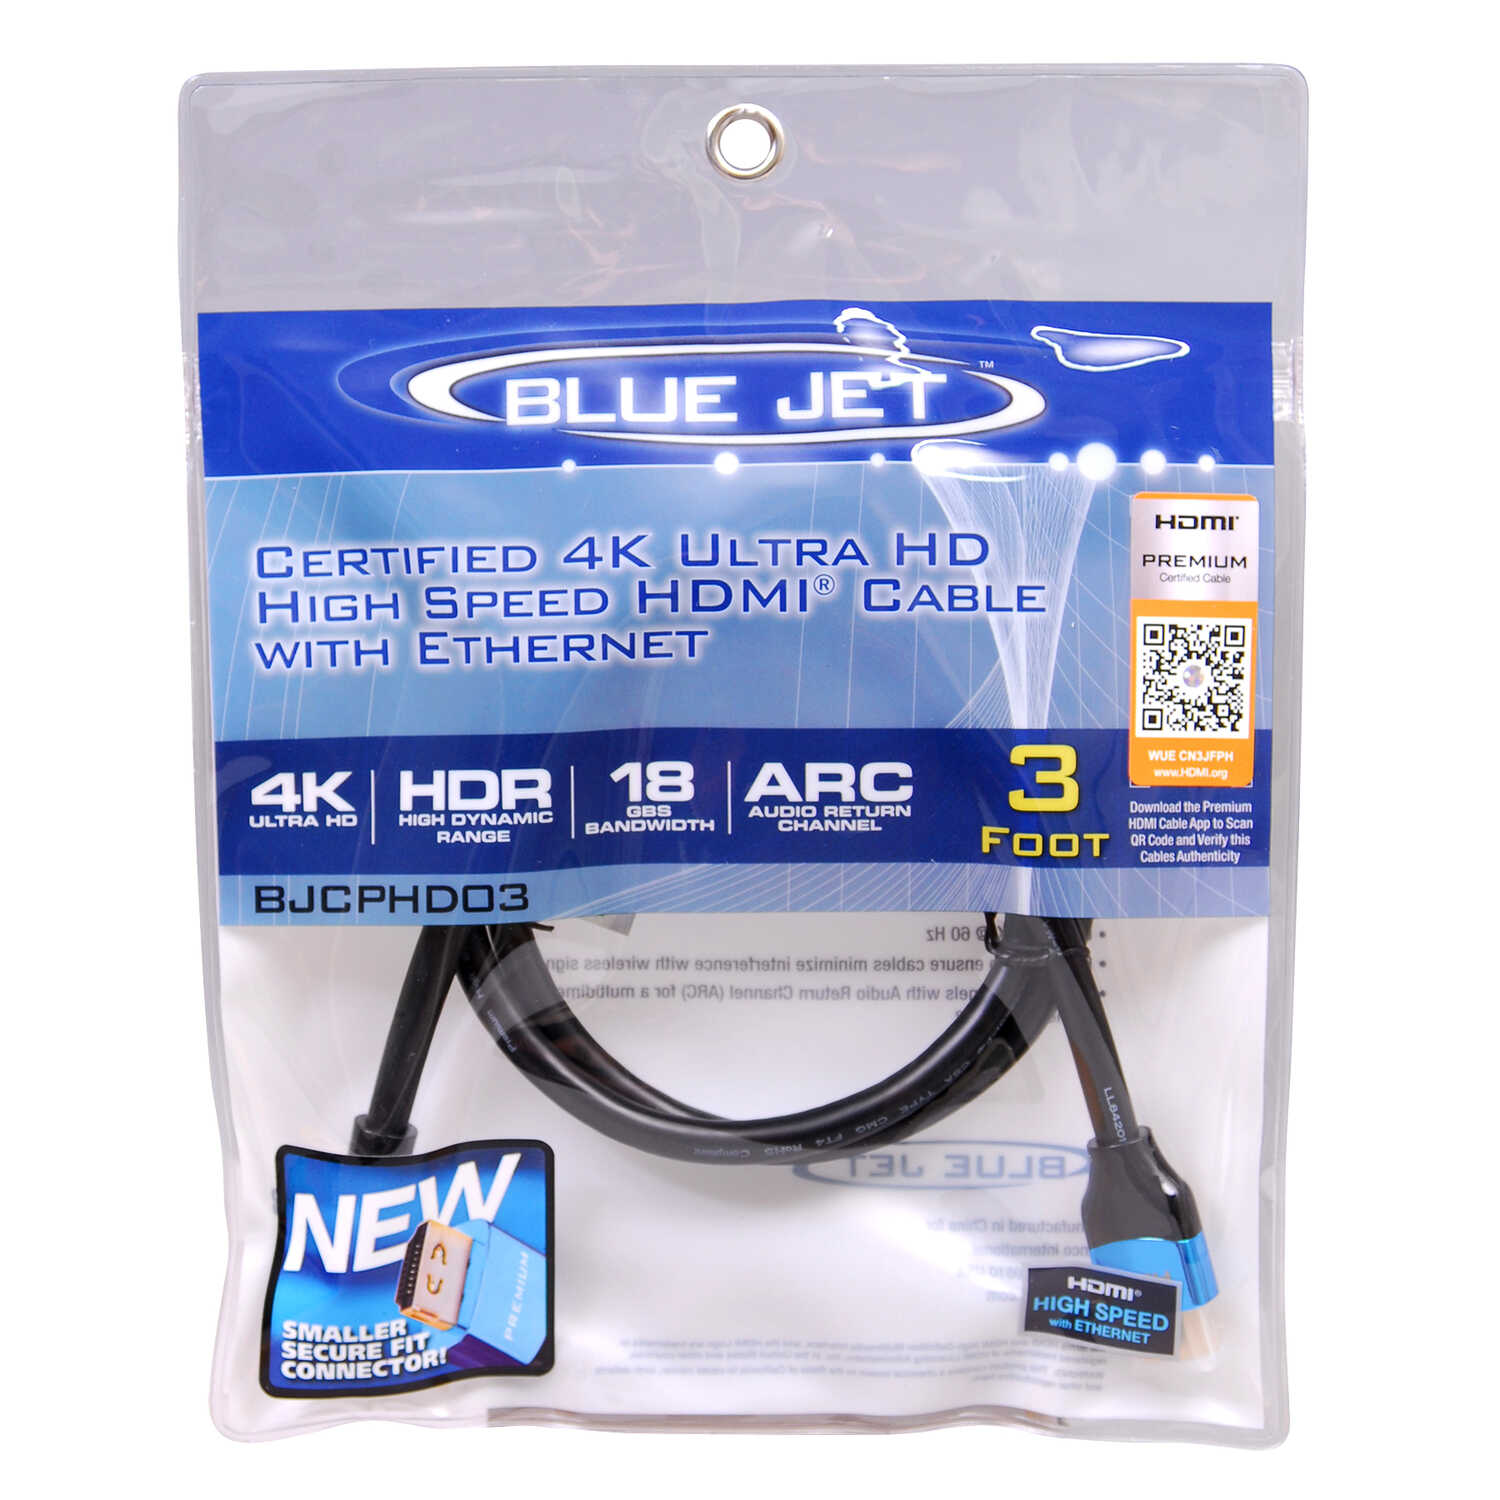 Blue Jet  3 ft. L High Speed Cable with Ethernet  HDMI